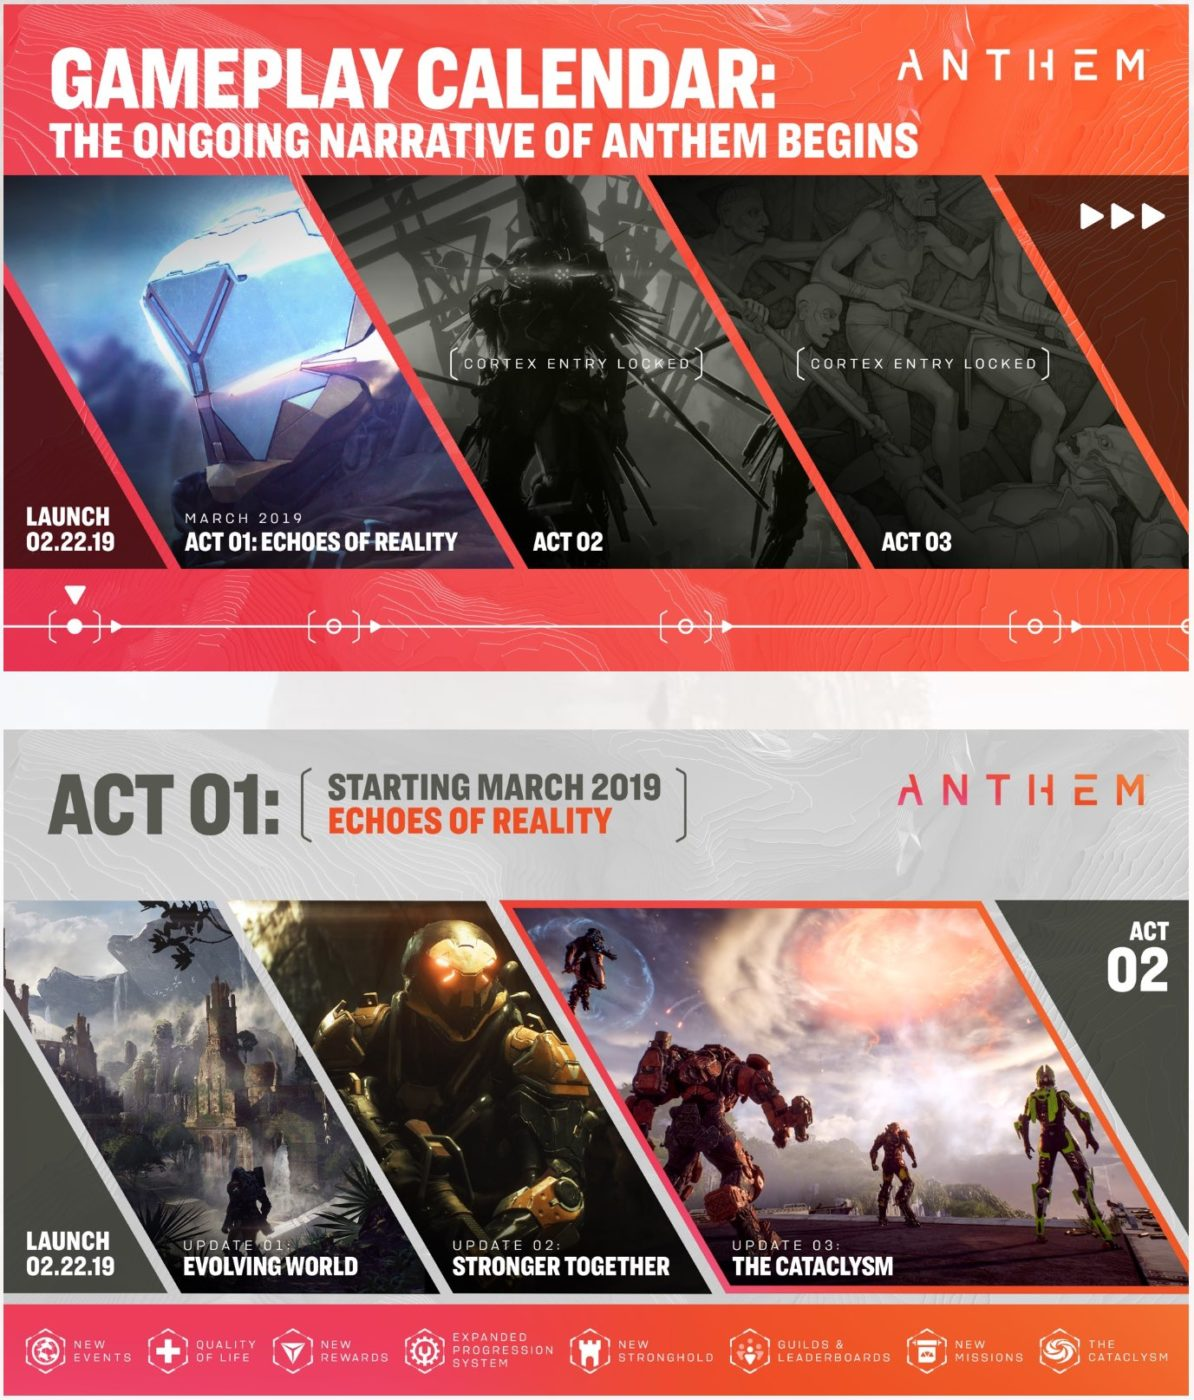 Anthem Coming To PS5 With Game Save Files Carrying Over - Rumor